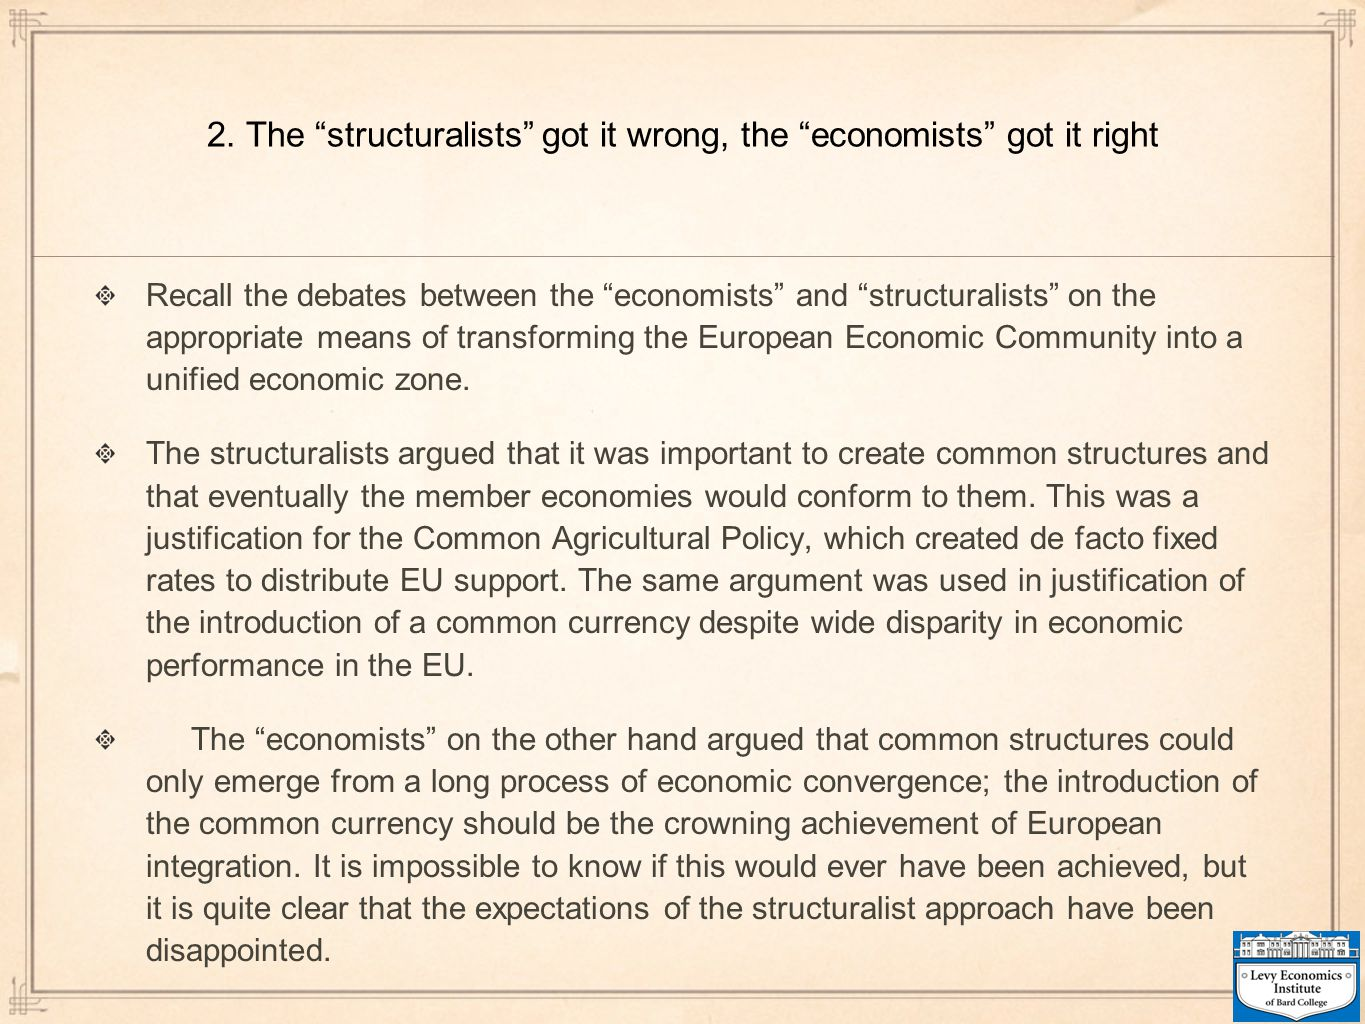 2. The structuralists got it wrong, the economists got it right